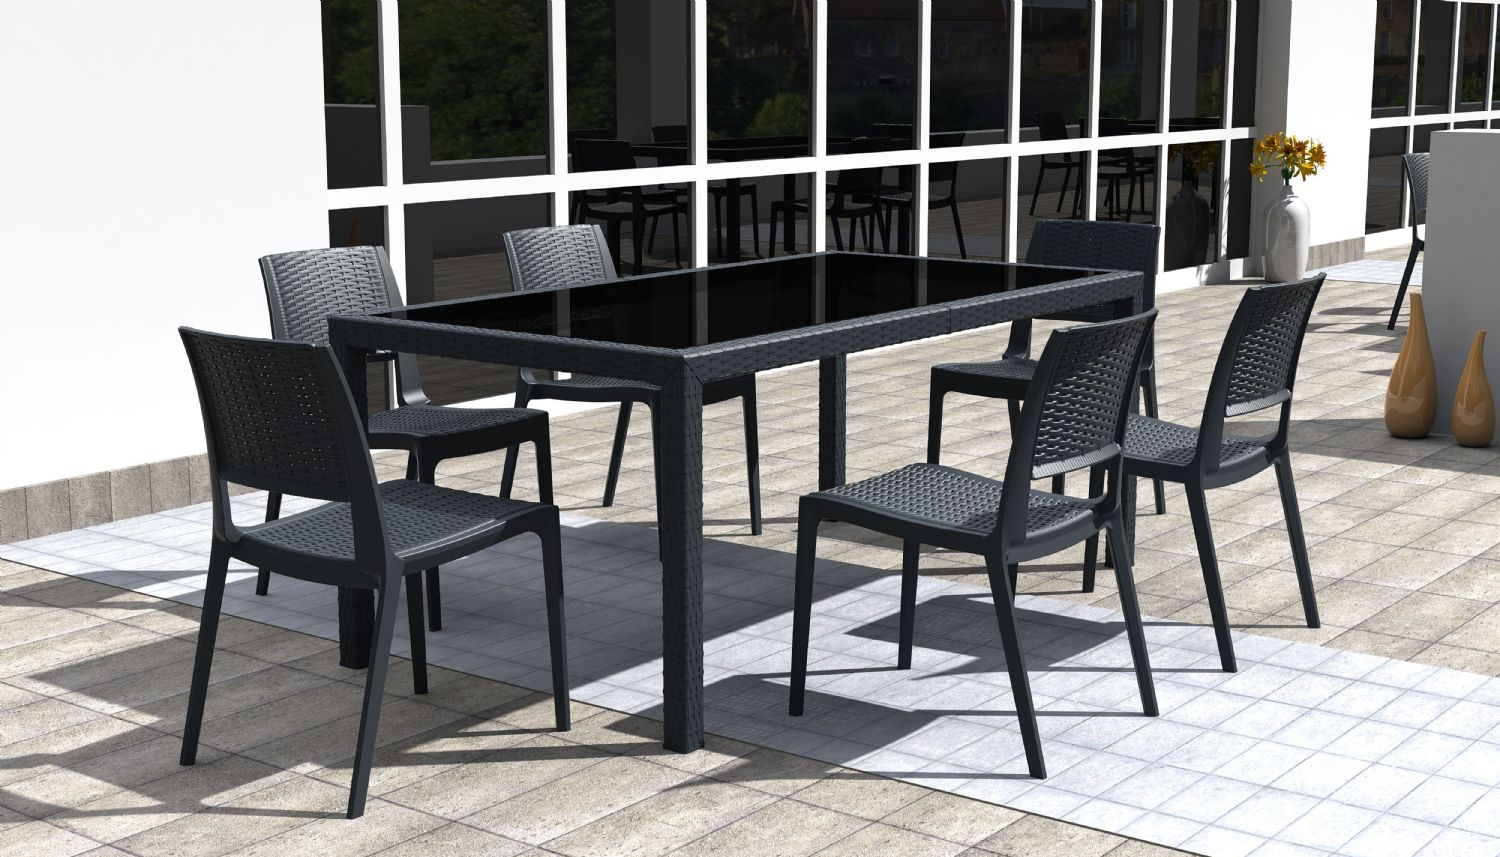 Miami Wickerlook Rectangle Dining Set 7 Piece White ISP997S-WH - 3